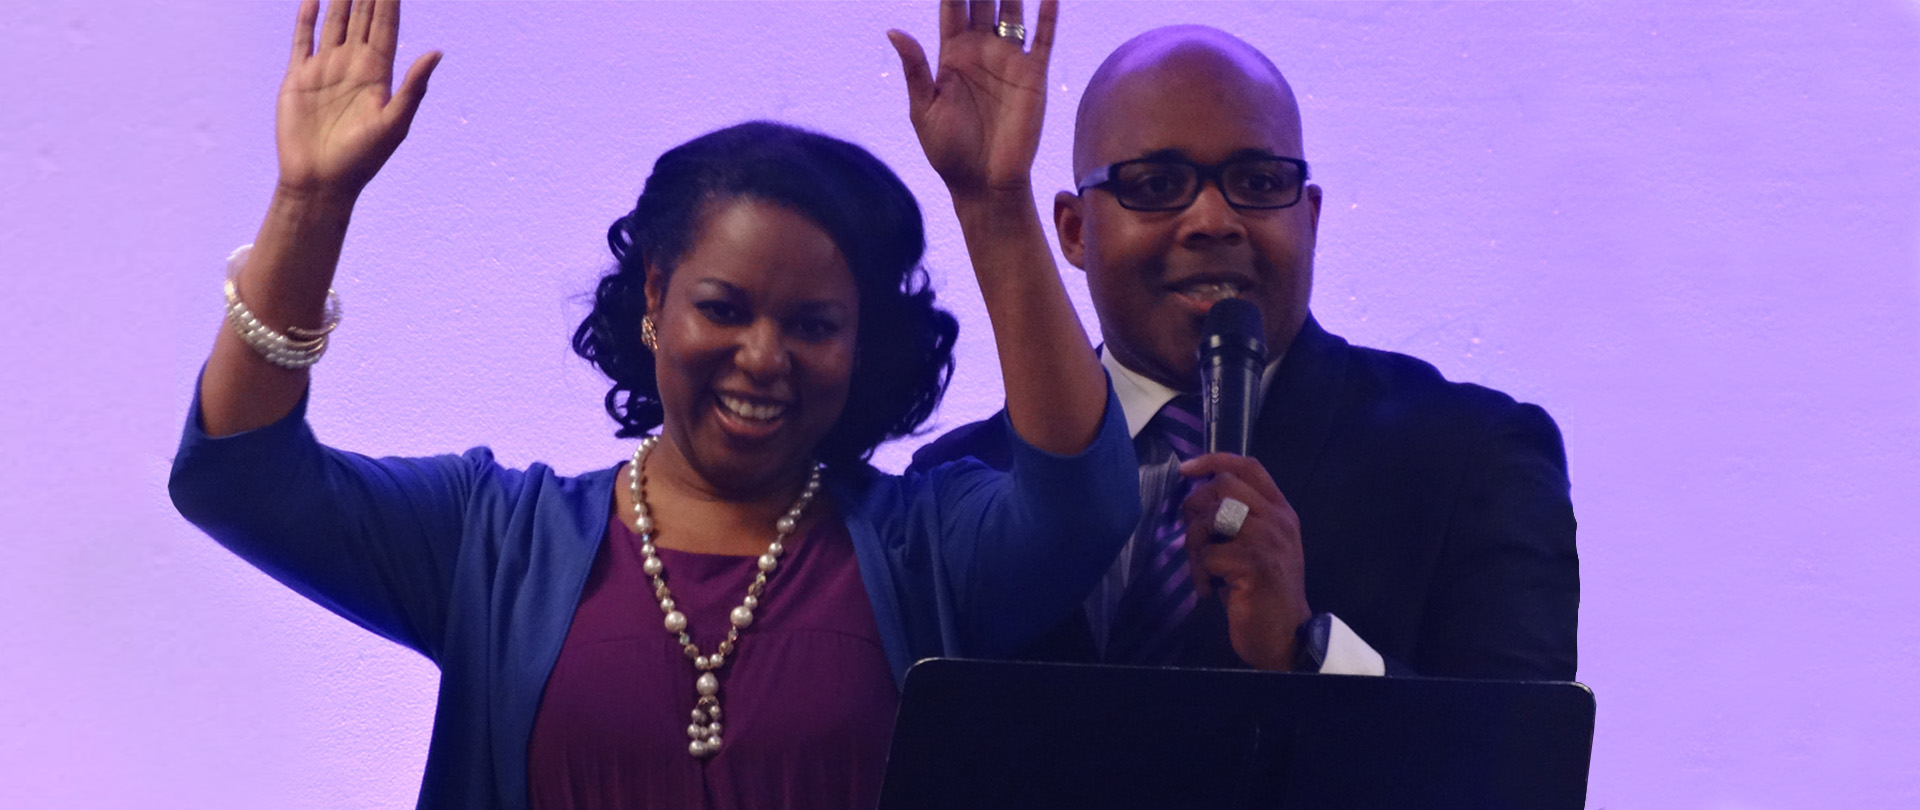 Meet the Pastor and Lady Peoples